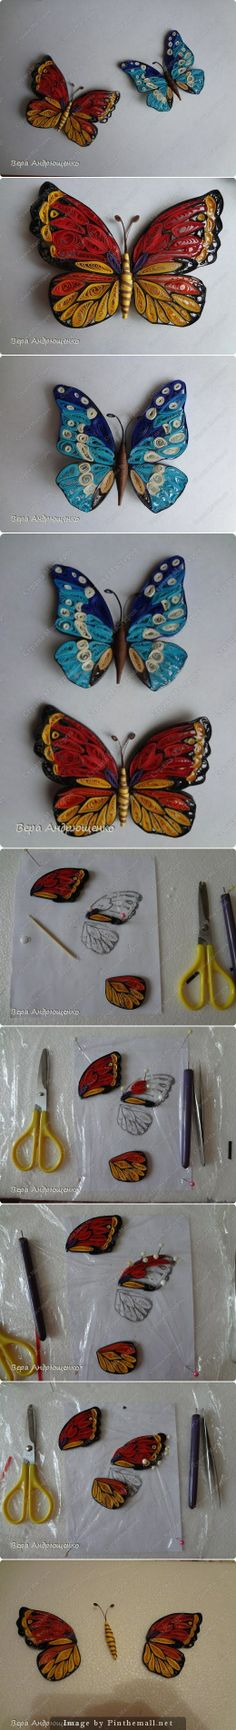 BUTTERFLY TUTORIAL http://stranamasterov.ru/node/660363 - created via http://pinthemall.net